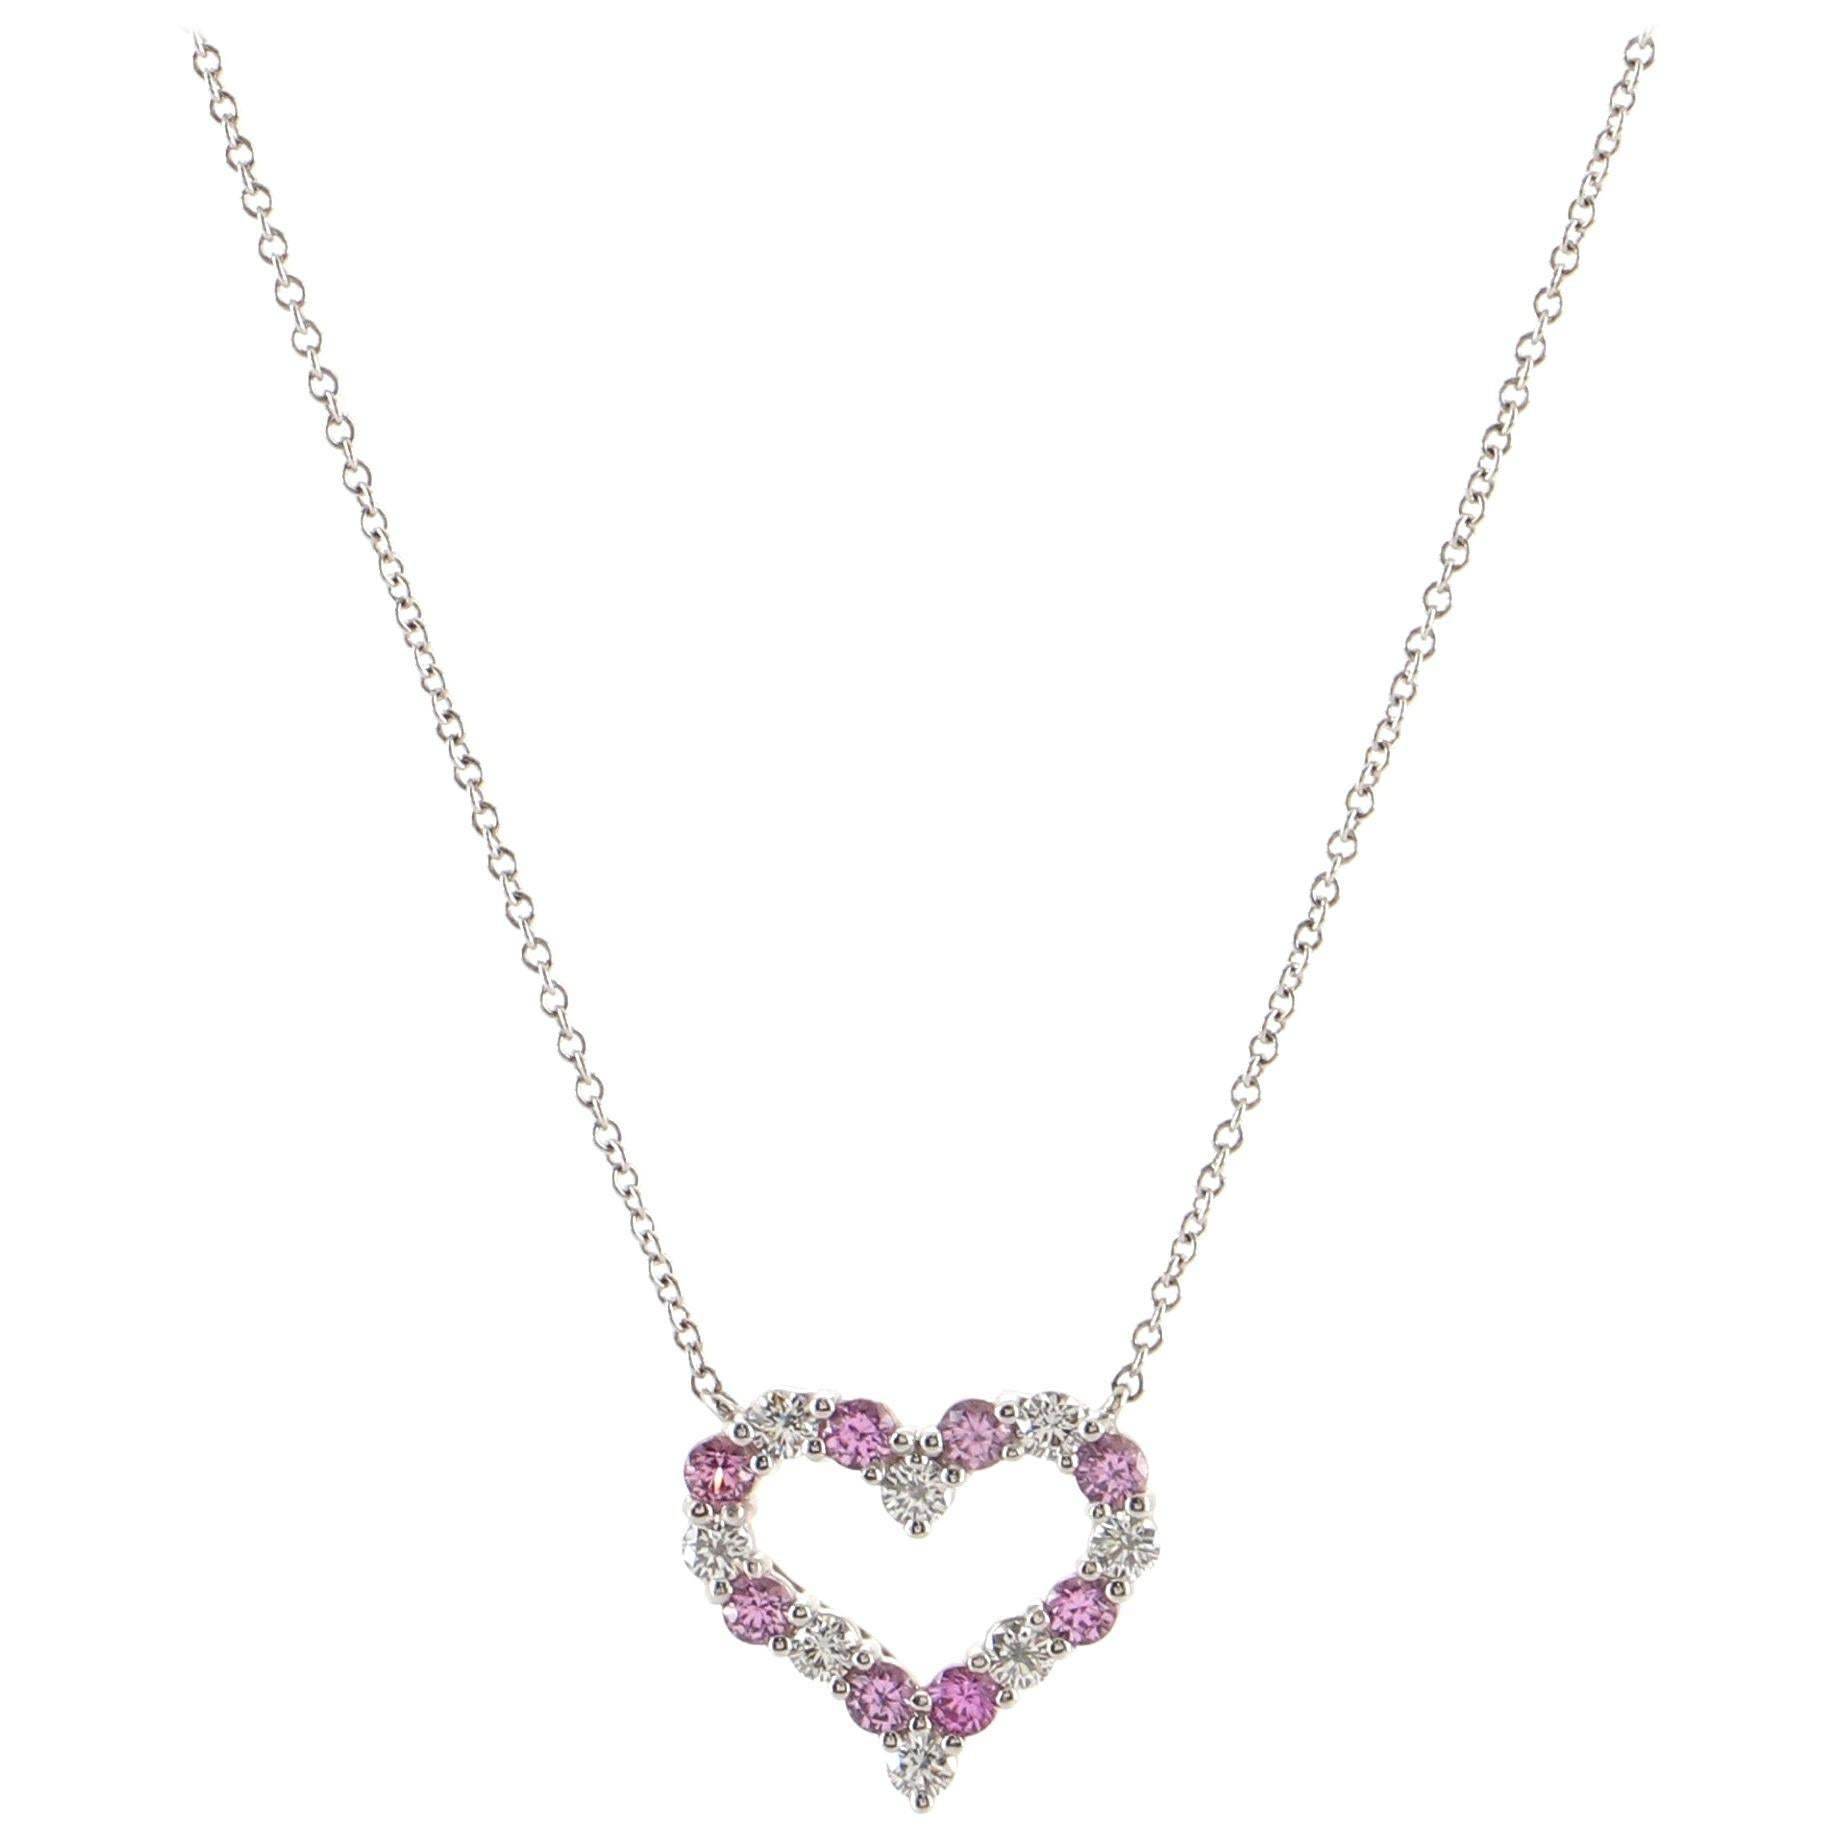 Tiffany & Co. Sentimental Heart Pendant Necklace Platinum with Diamonds and Pink